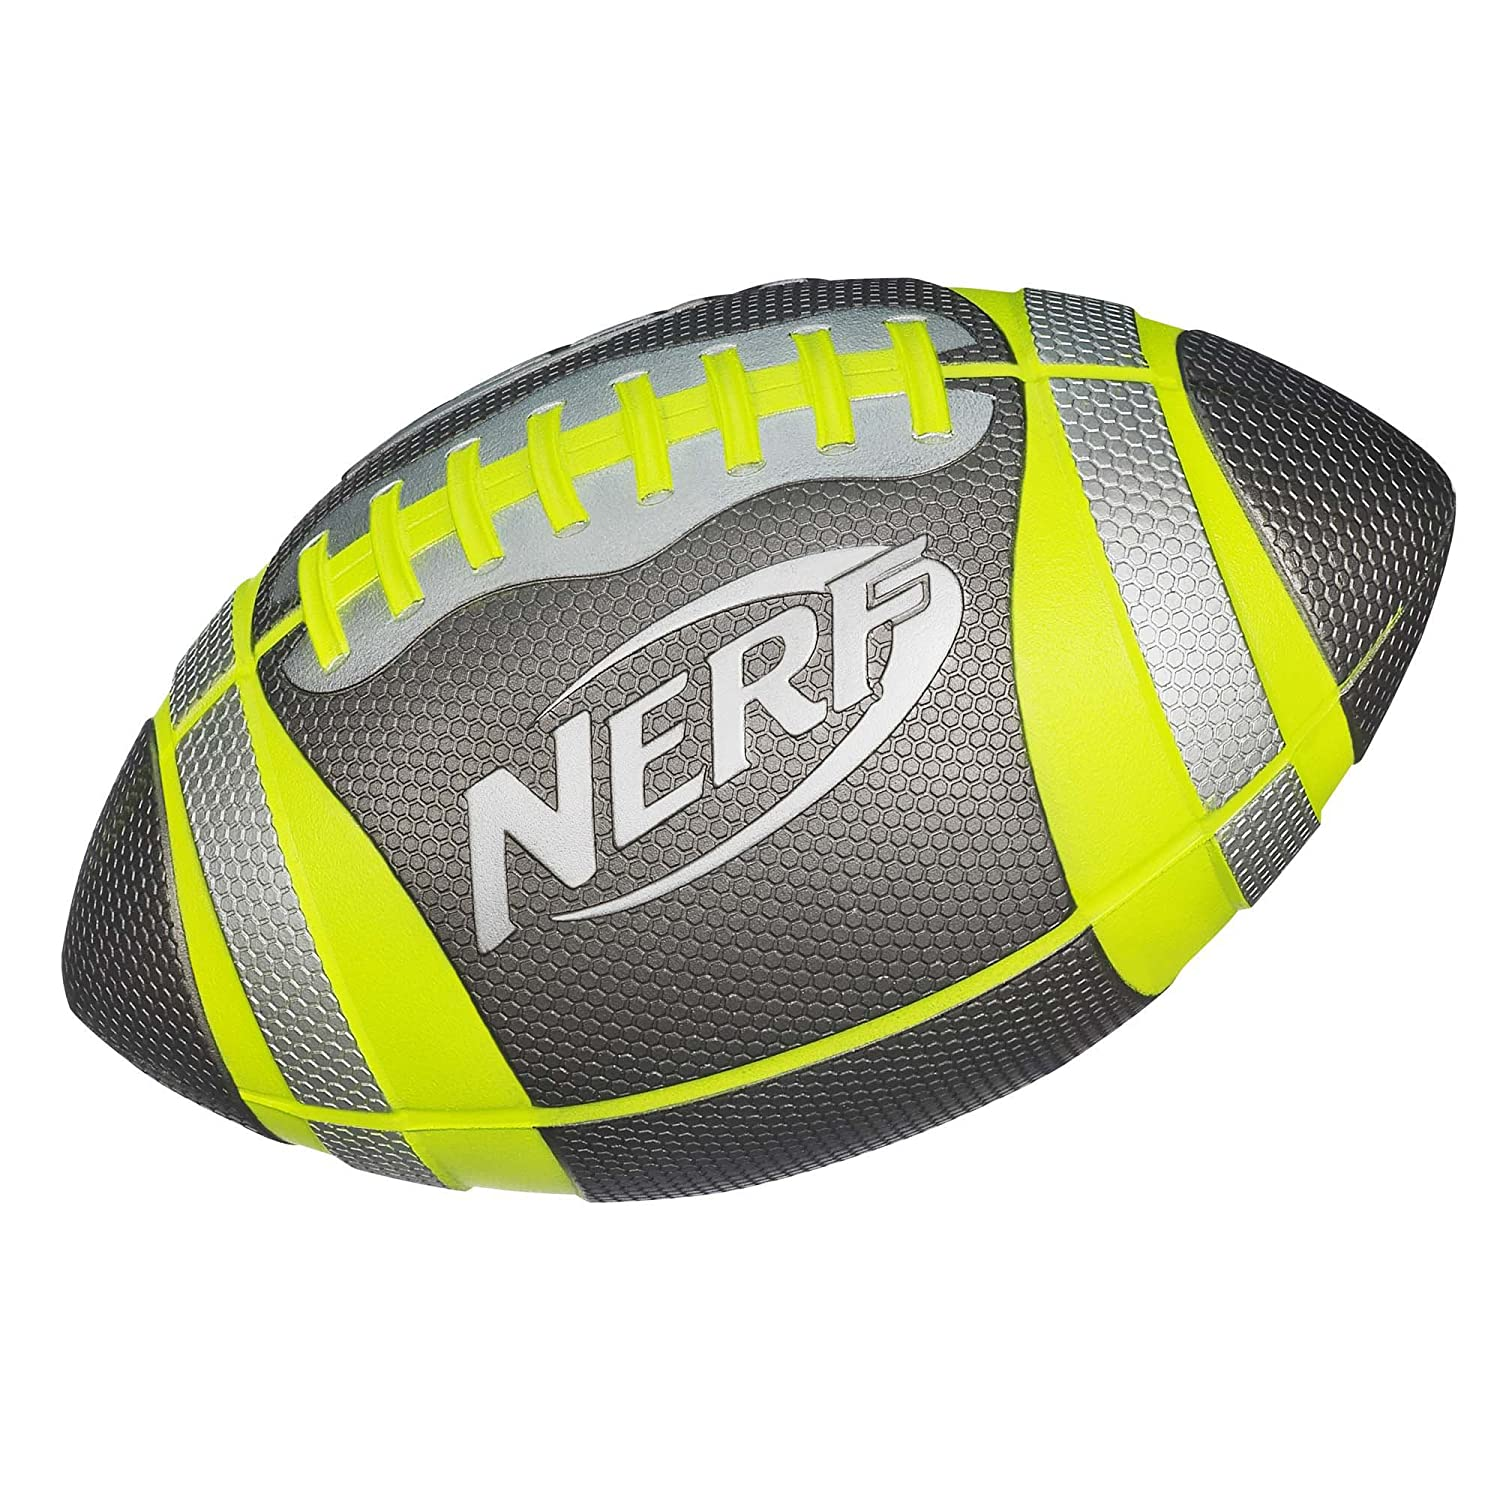 Amazon.com: Nerf N-Sports Pro Grip Football - Green: Toys & Games